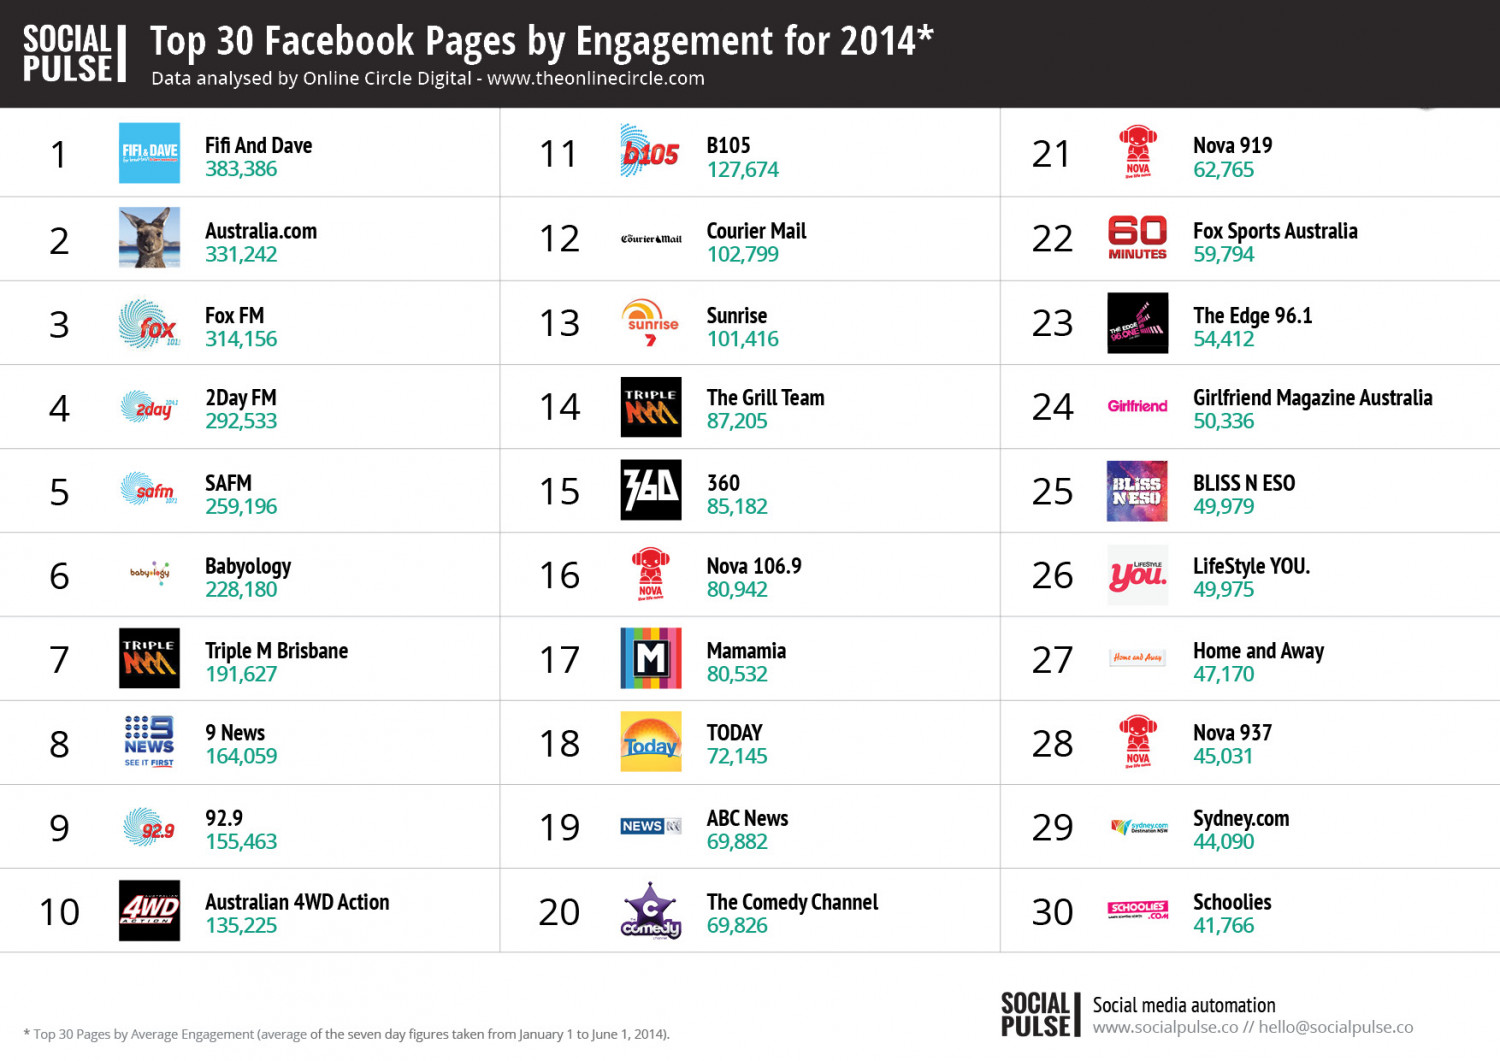 Top 30 Australian Facebook Pages by Engagement 2014 Infographic